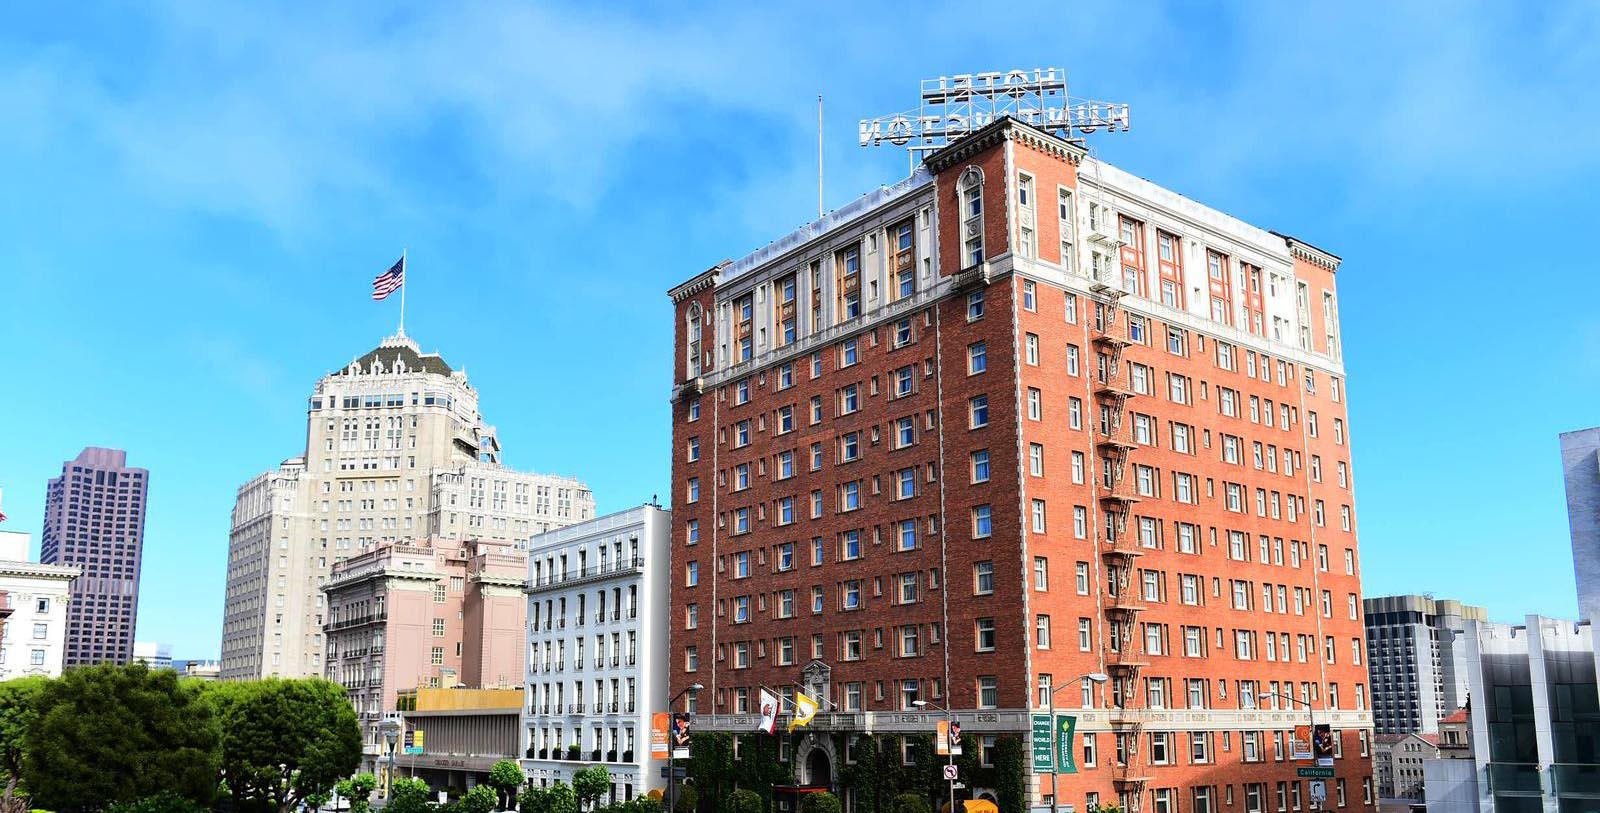 Image of Exterior The Huntington Hotel, 1924, Member of Historic Hotels of America, in San Francisco, Overview